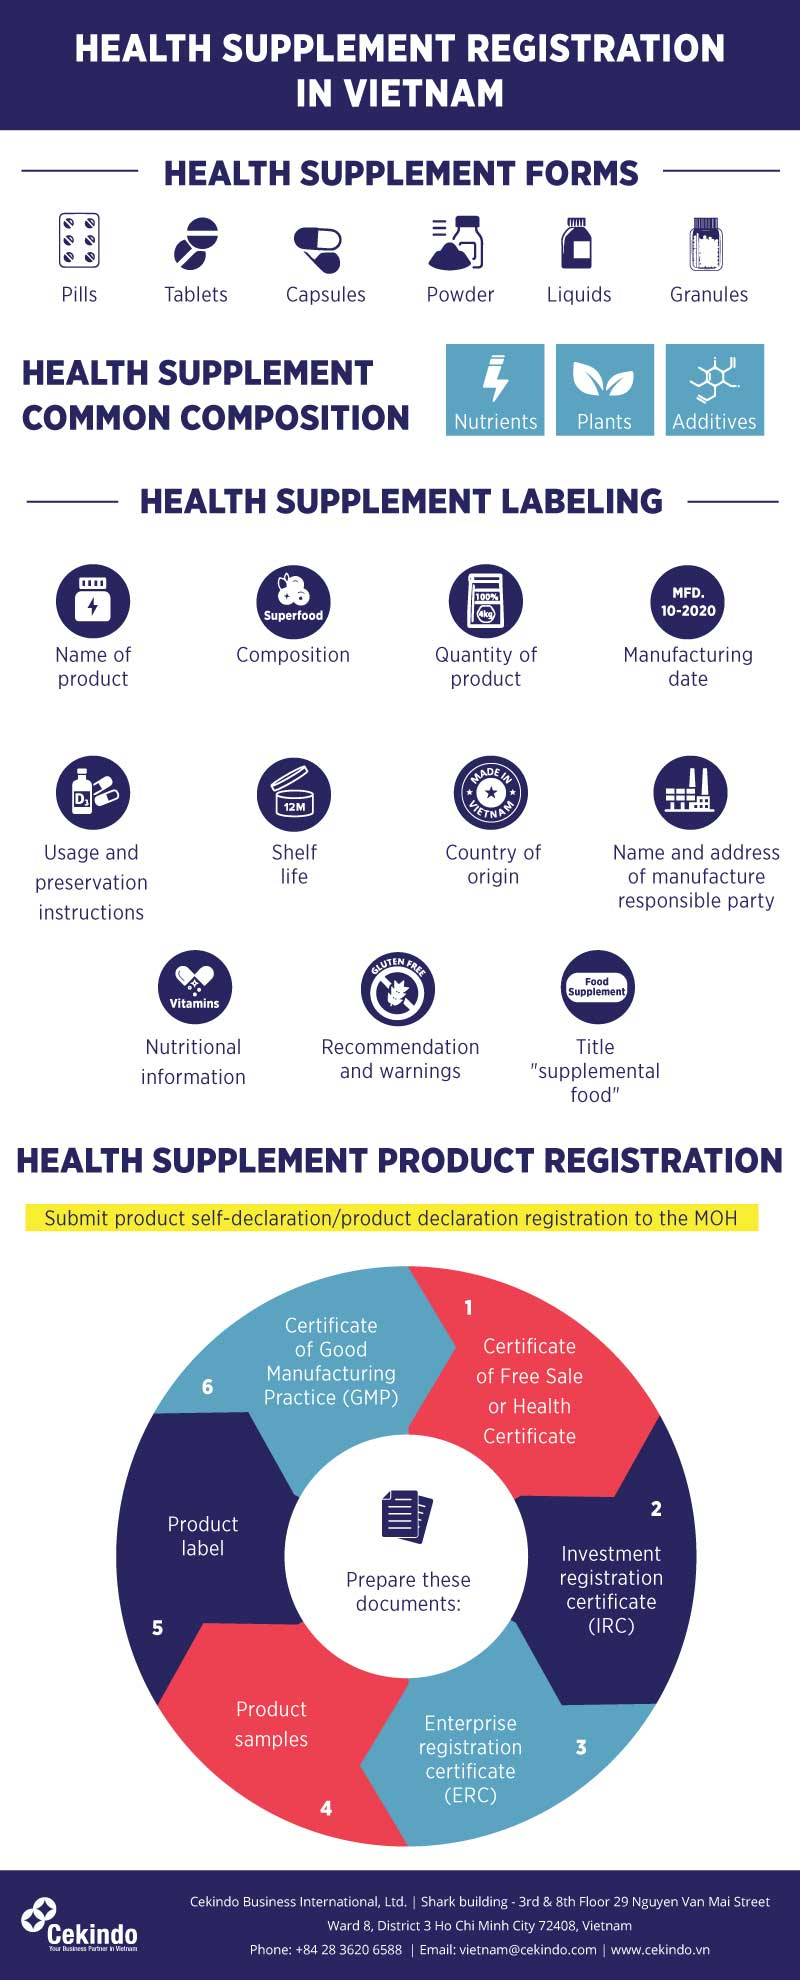 infographic - Healt Supplement Products Registration in Vietnam